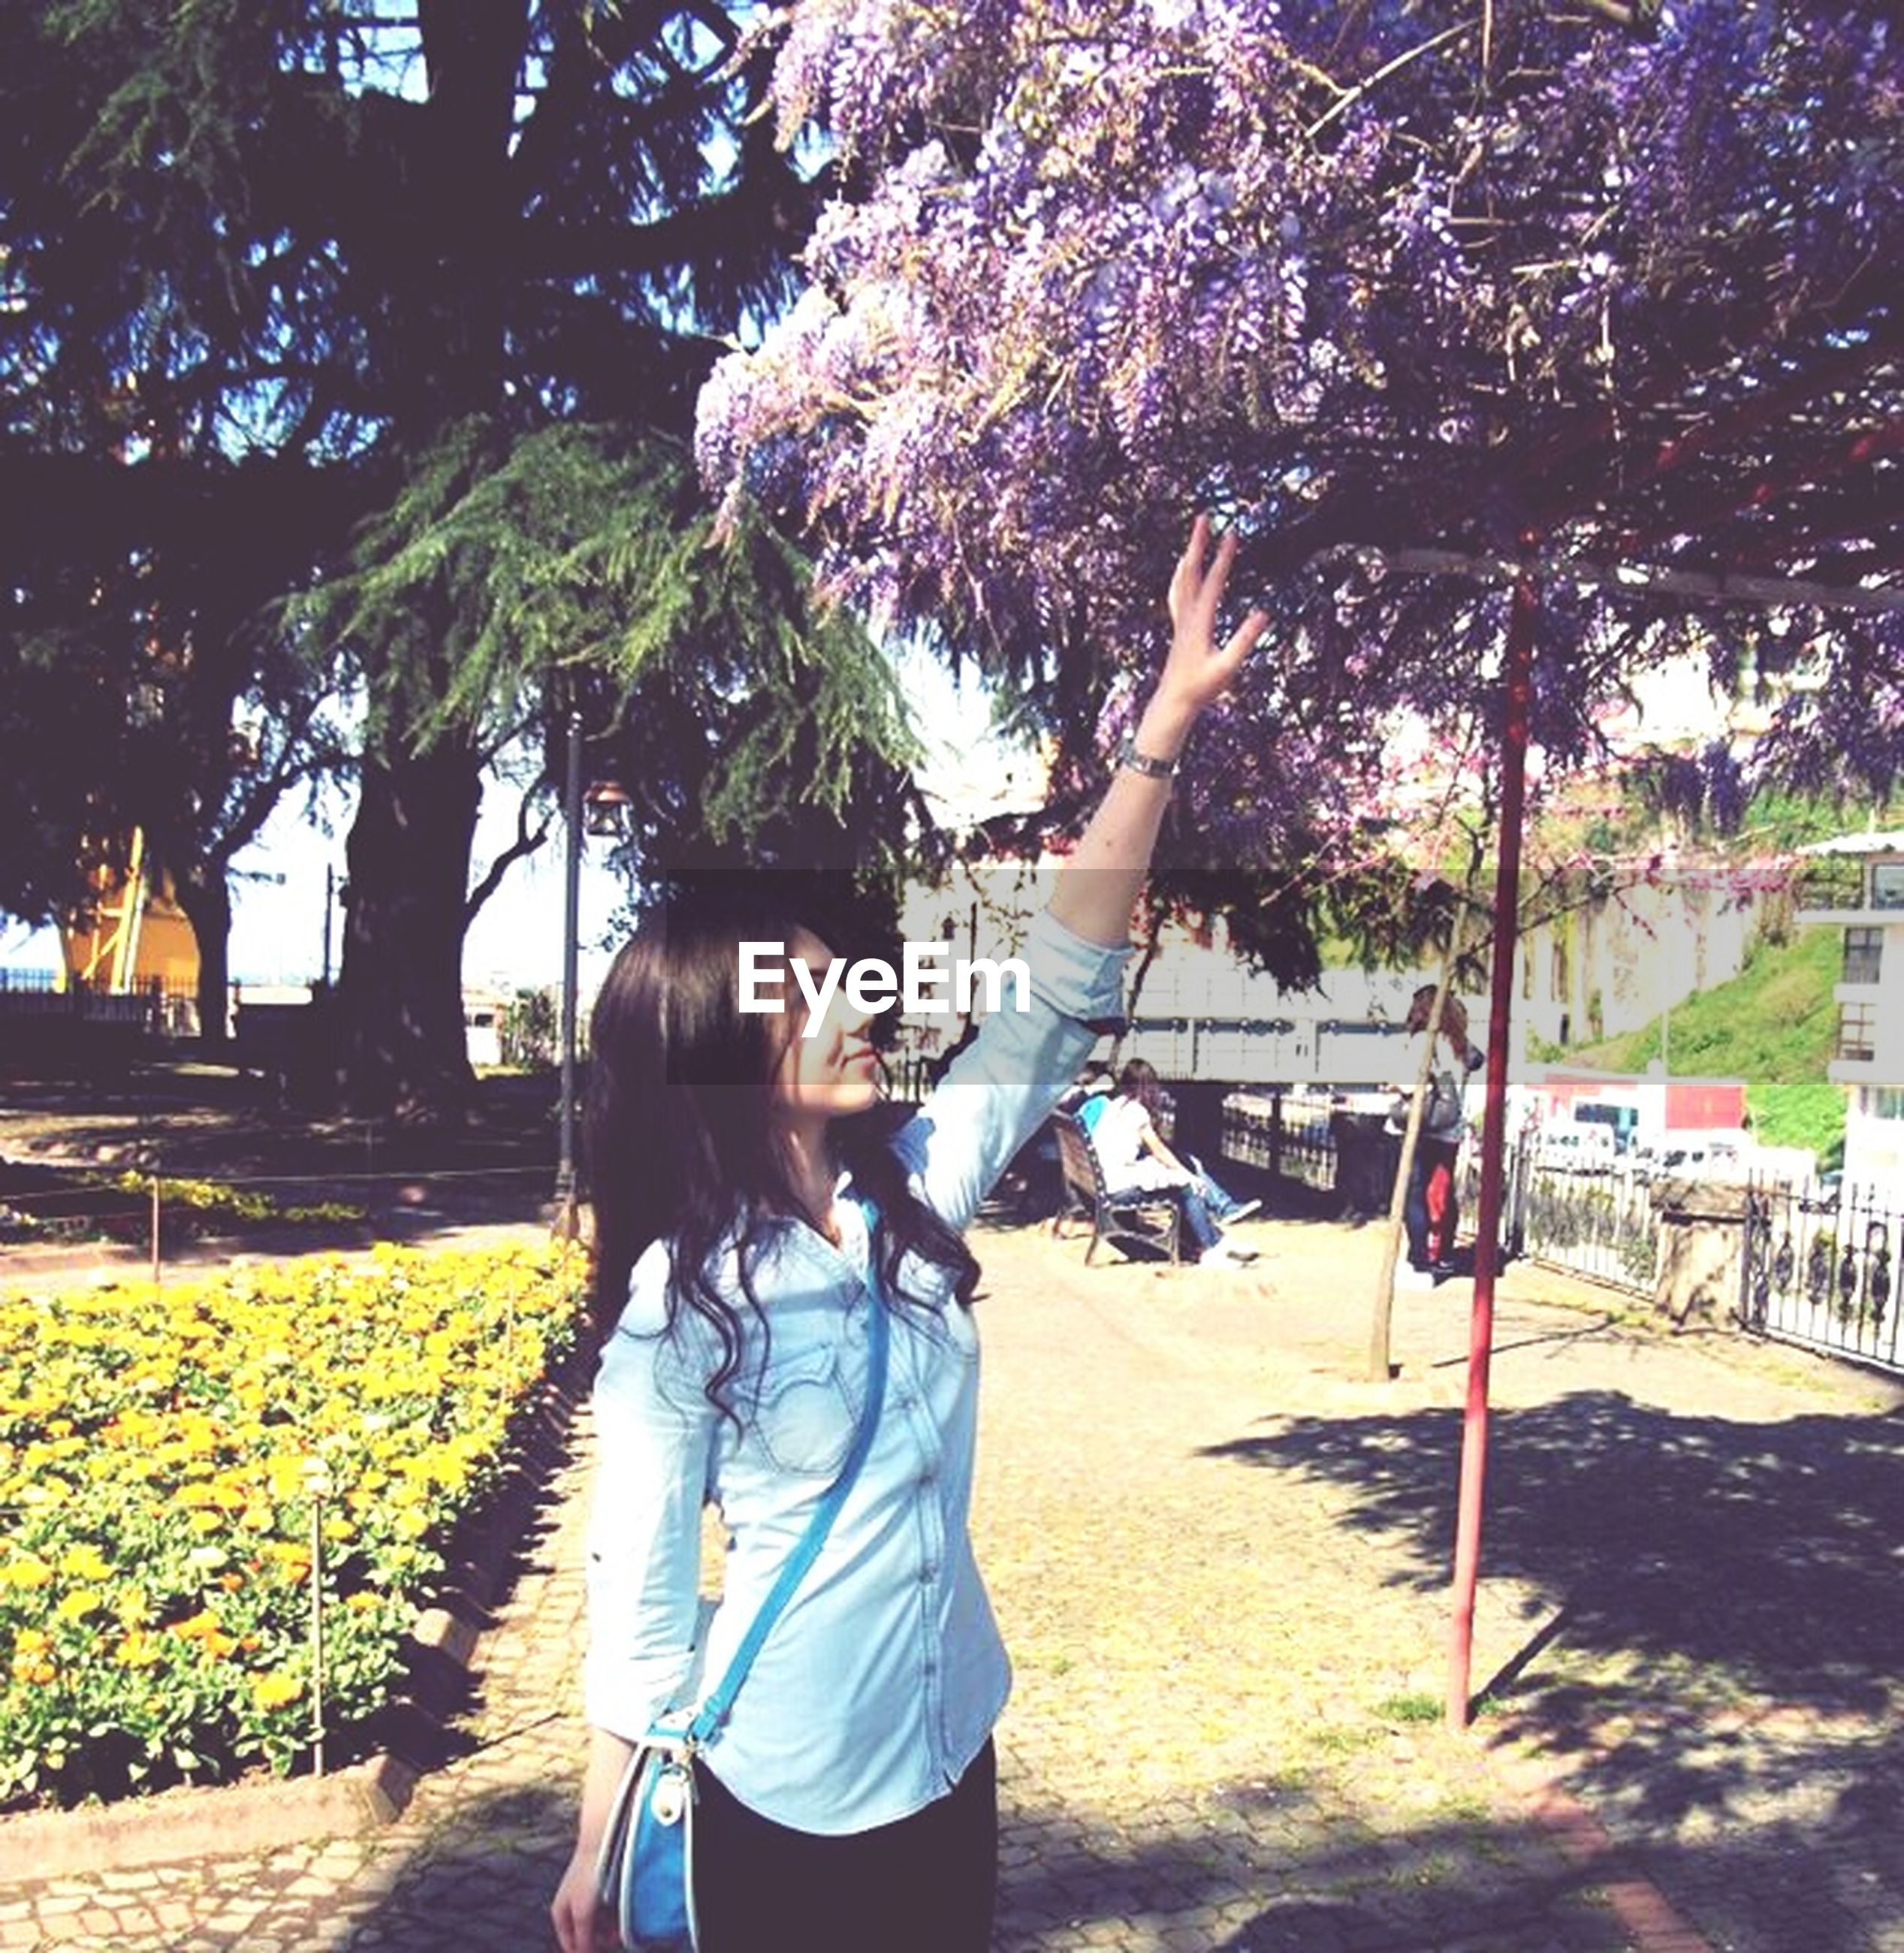 tree, lifestyles, leisure activity, casual clothing, young adult, person, rear view, long hair, young women, full length, standing, park - man made space, transportation, growth, sunlight, flower, outdoors